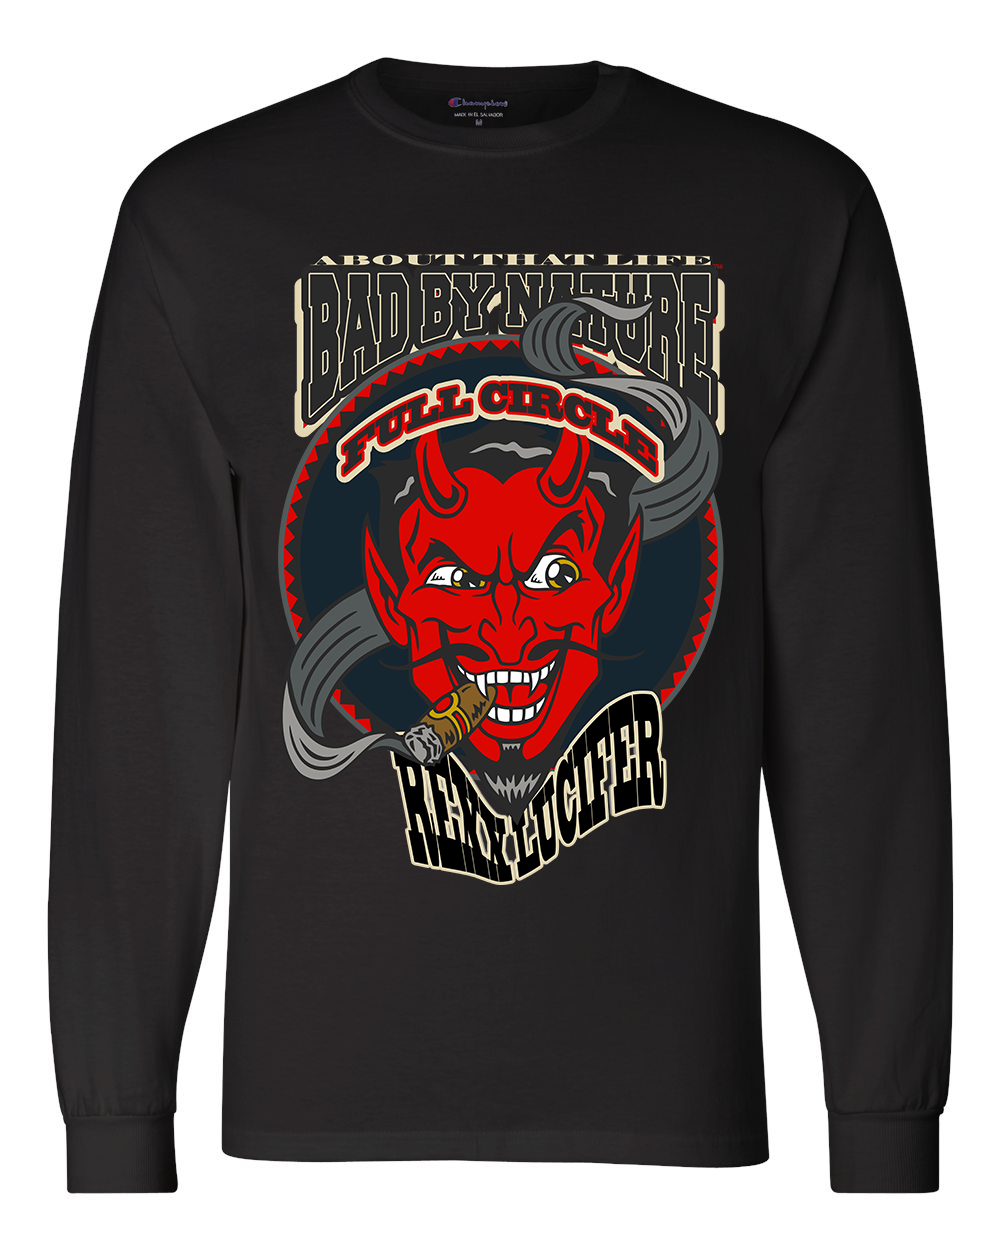 REXX LUCIFER: MEN'S CHAMPION LONG SLEEVE SHIRT